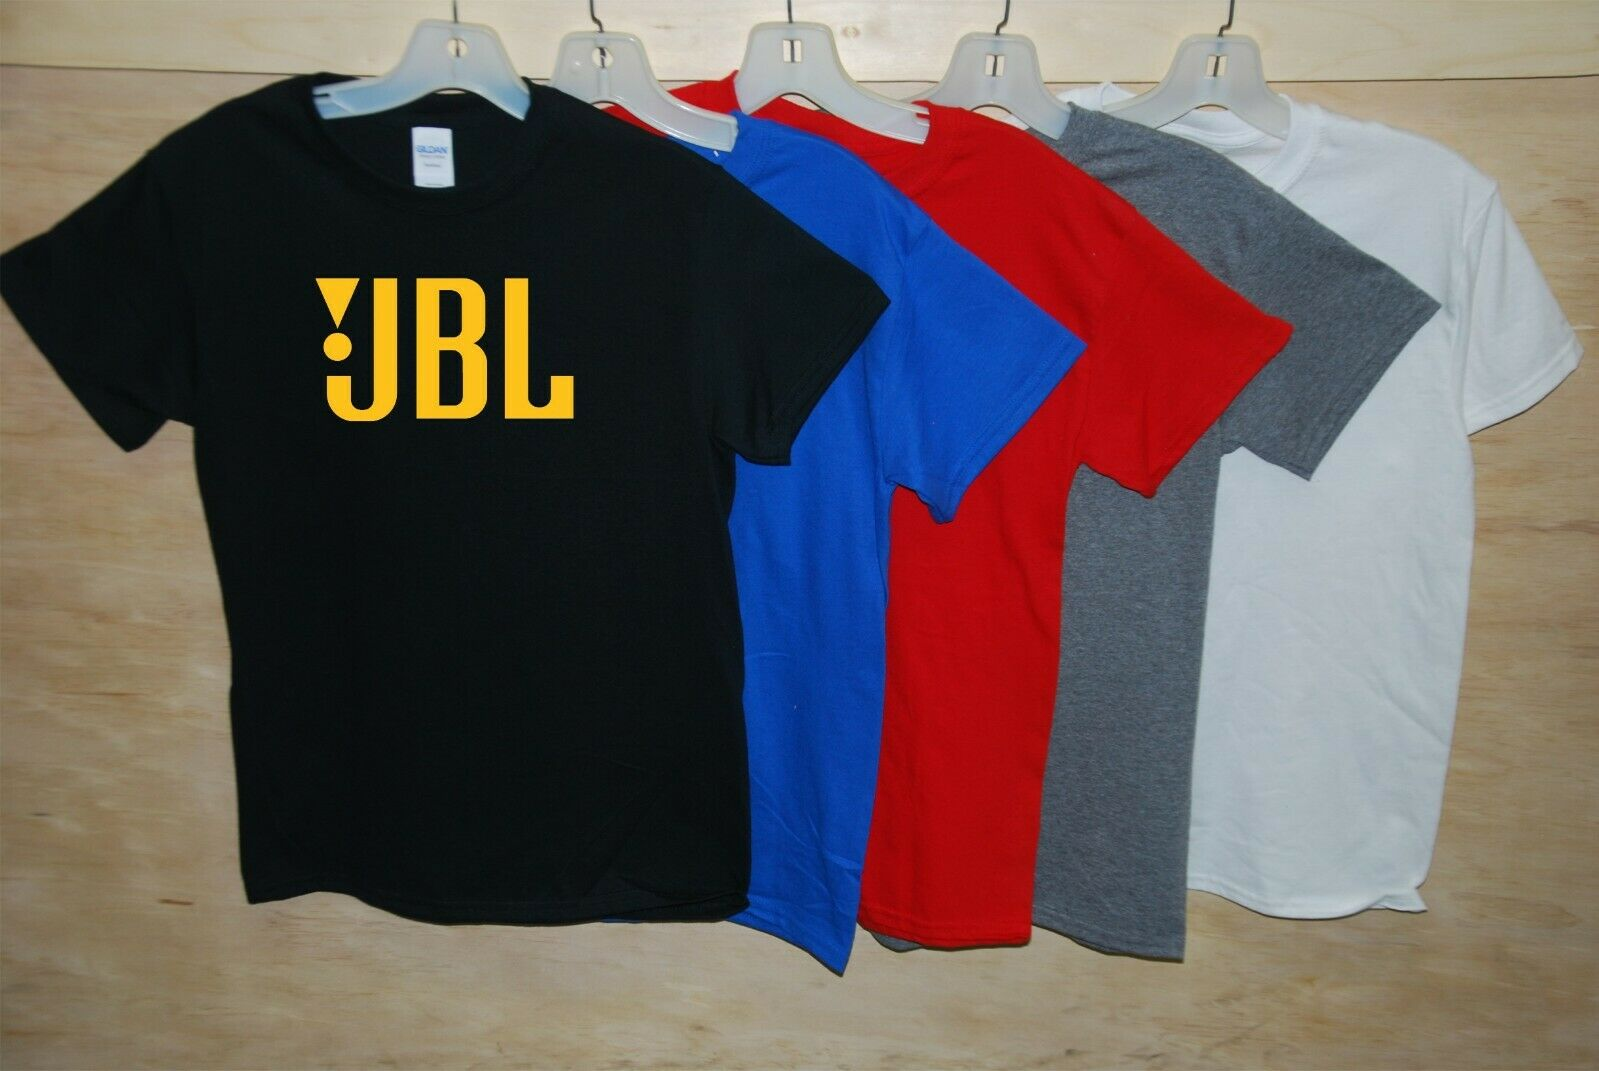 2019 Funny Jbl Speaker Charger Headphone Company T-Shirt Free Shipping Nwot Buy 3 Get 1Free Tee Hoodie image